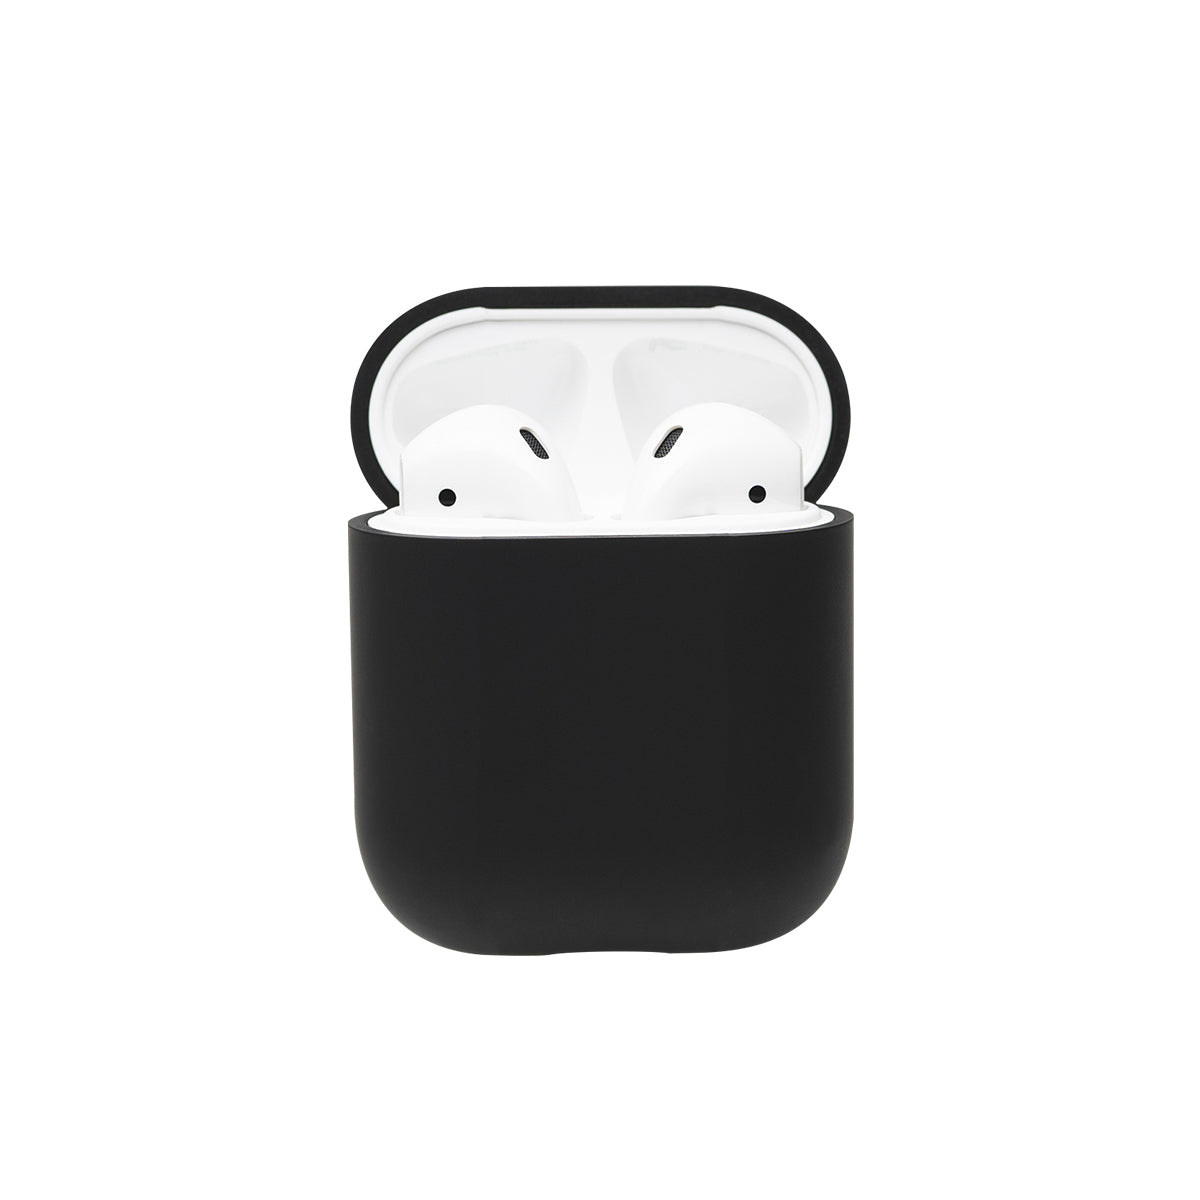 The Peel AirPods Case